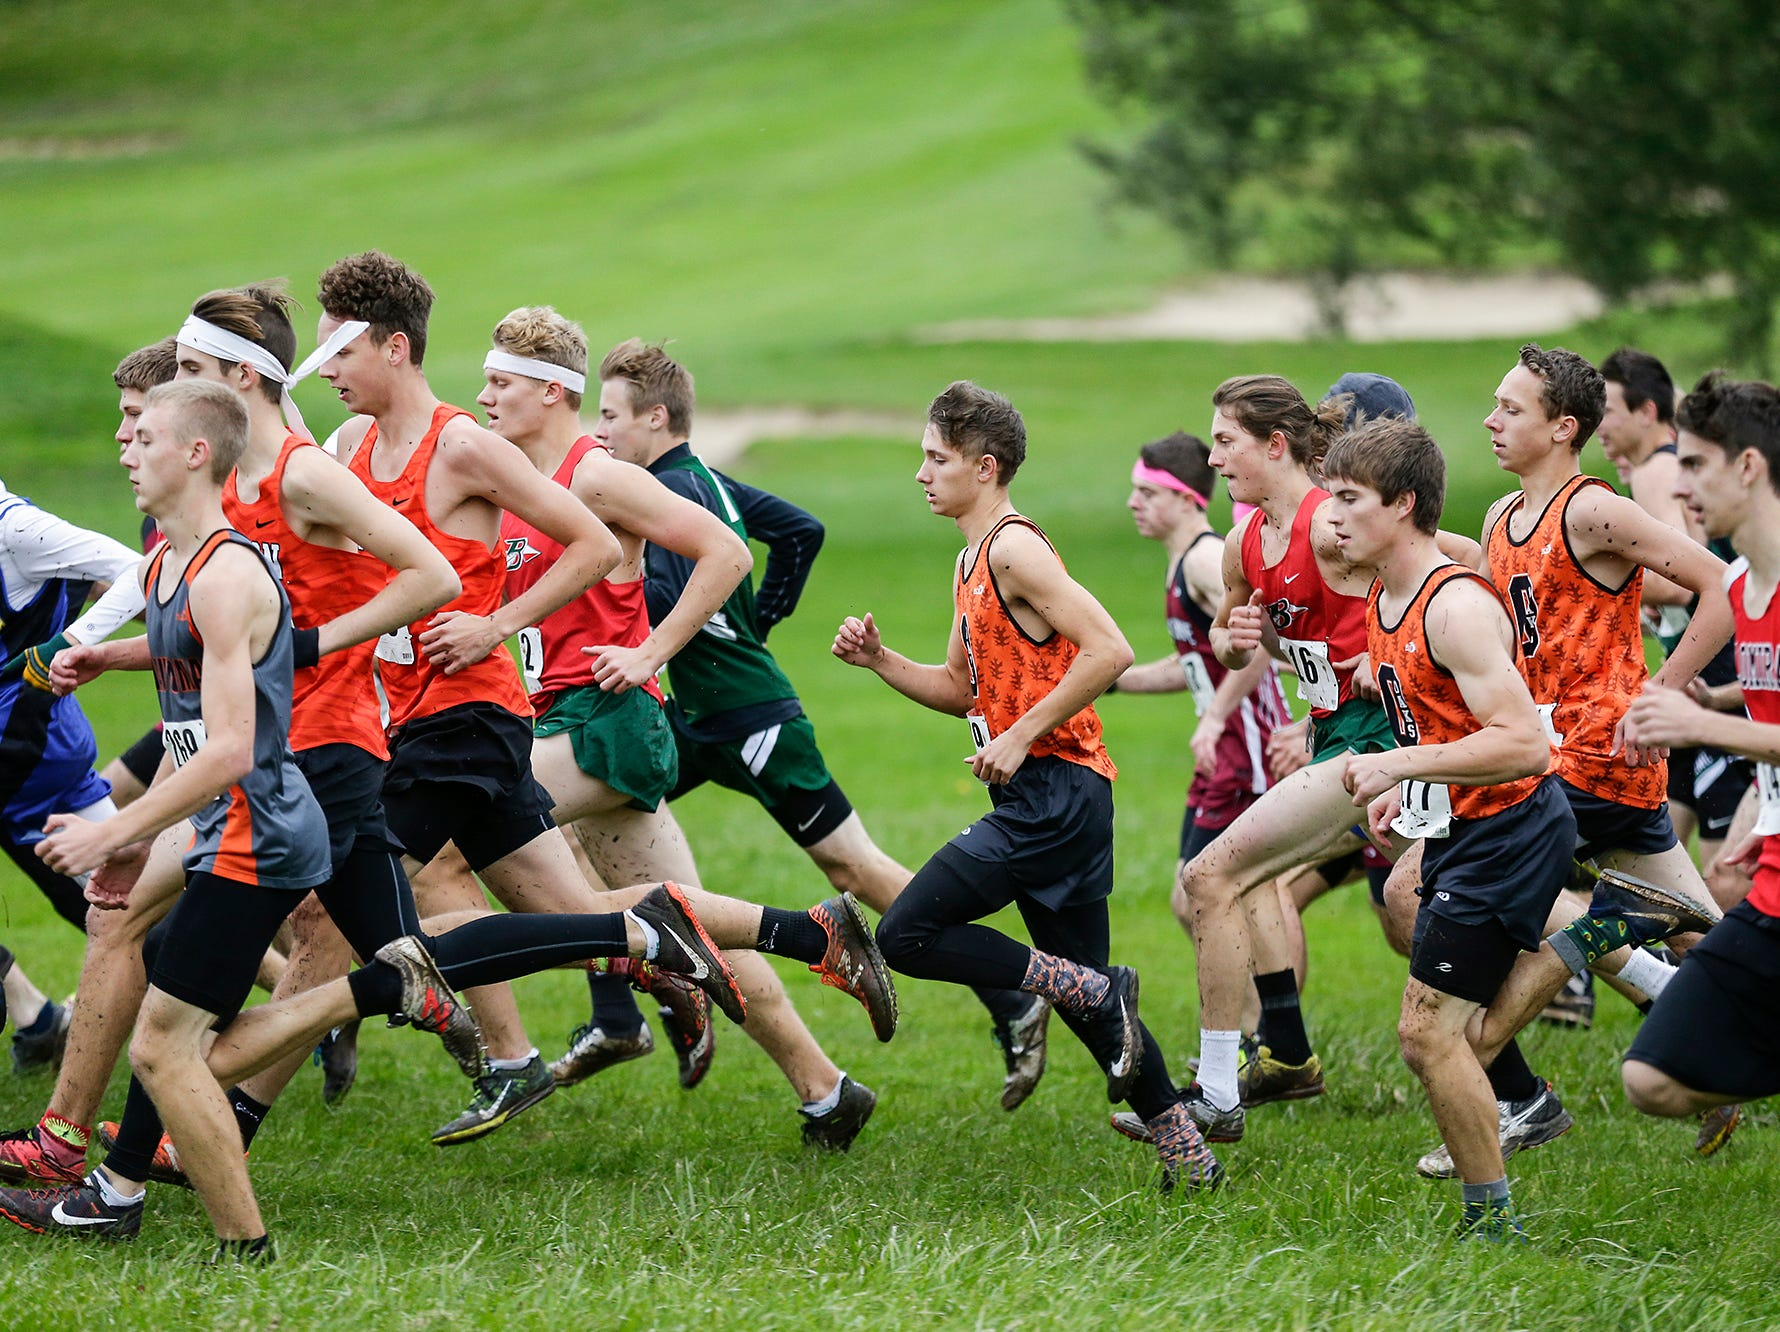 Runners from 15 area High Schools runs in the WIAA Division two Mayville sectional cross country meet at the Mayville golf course Friday, October 19, 2018. Doug Raflik/USA TODAY NETWORK-Wisconsin